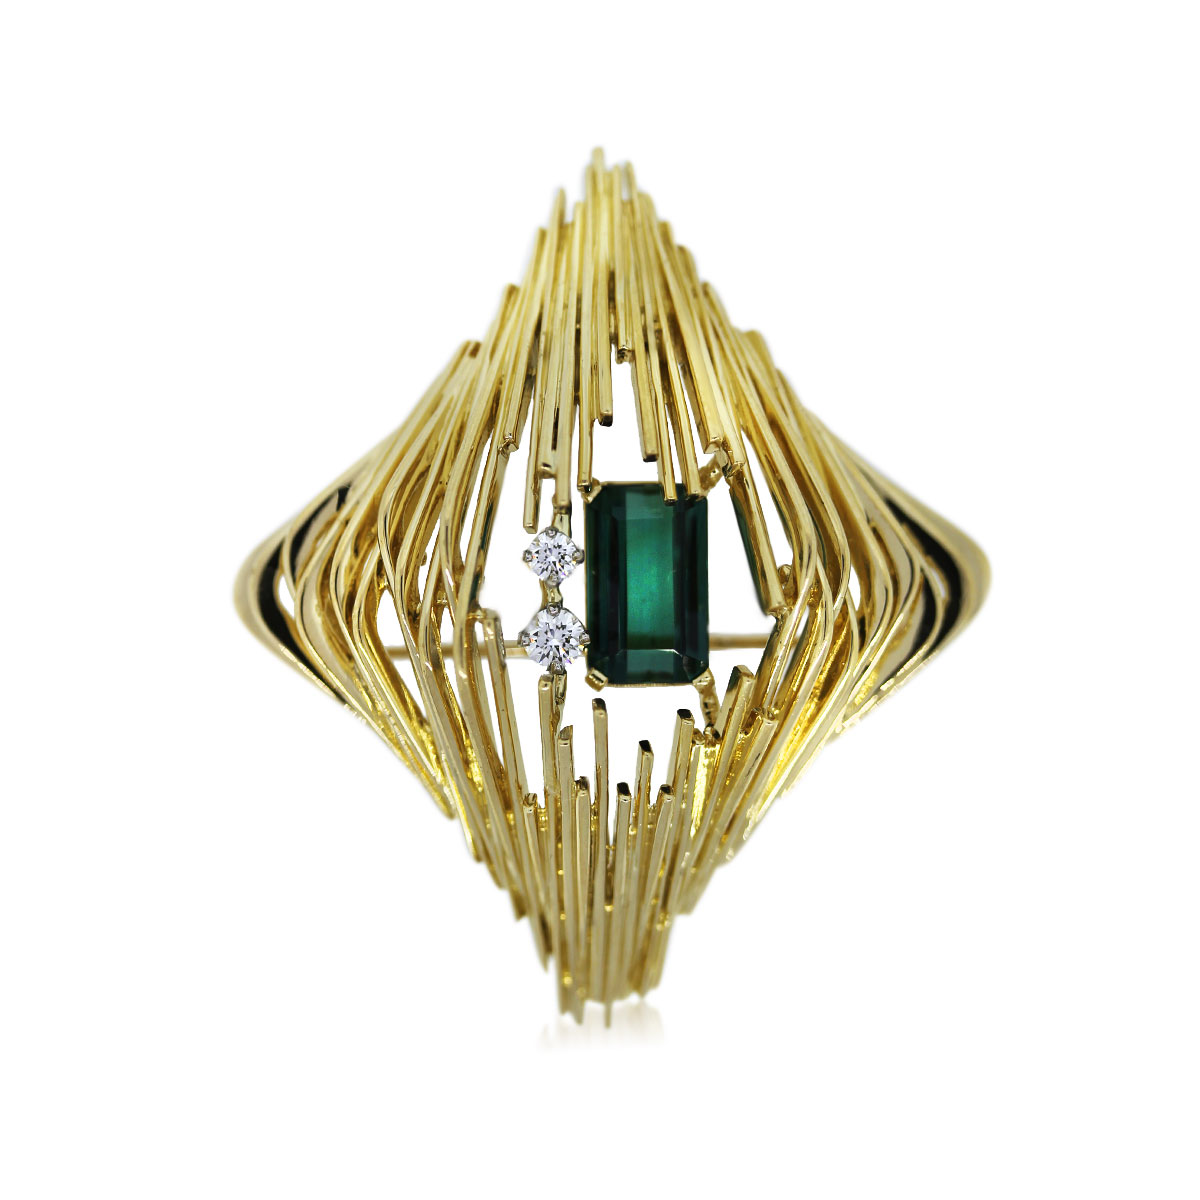 You are Viewing this 18k Yellow Gold Diamond and Green Tourmaline Pin!